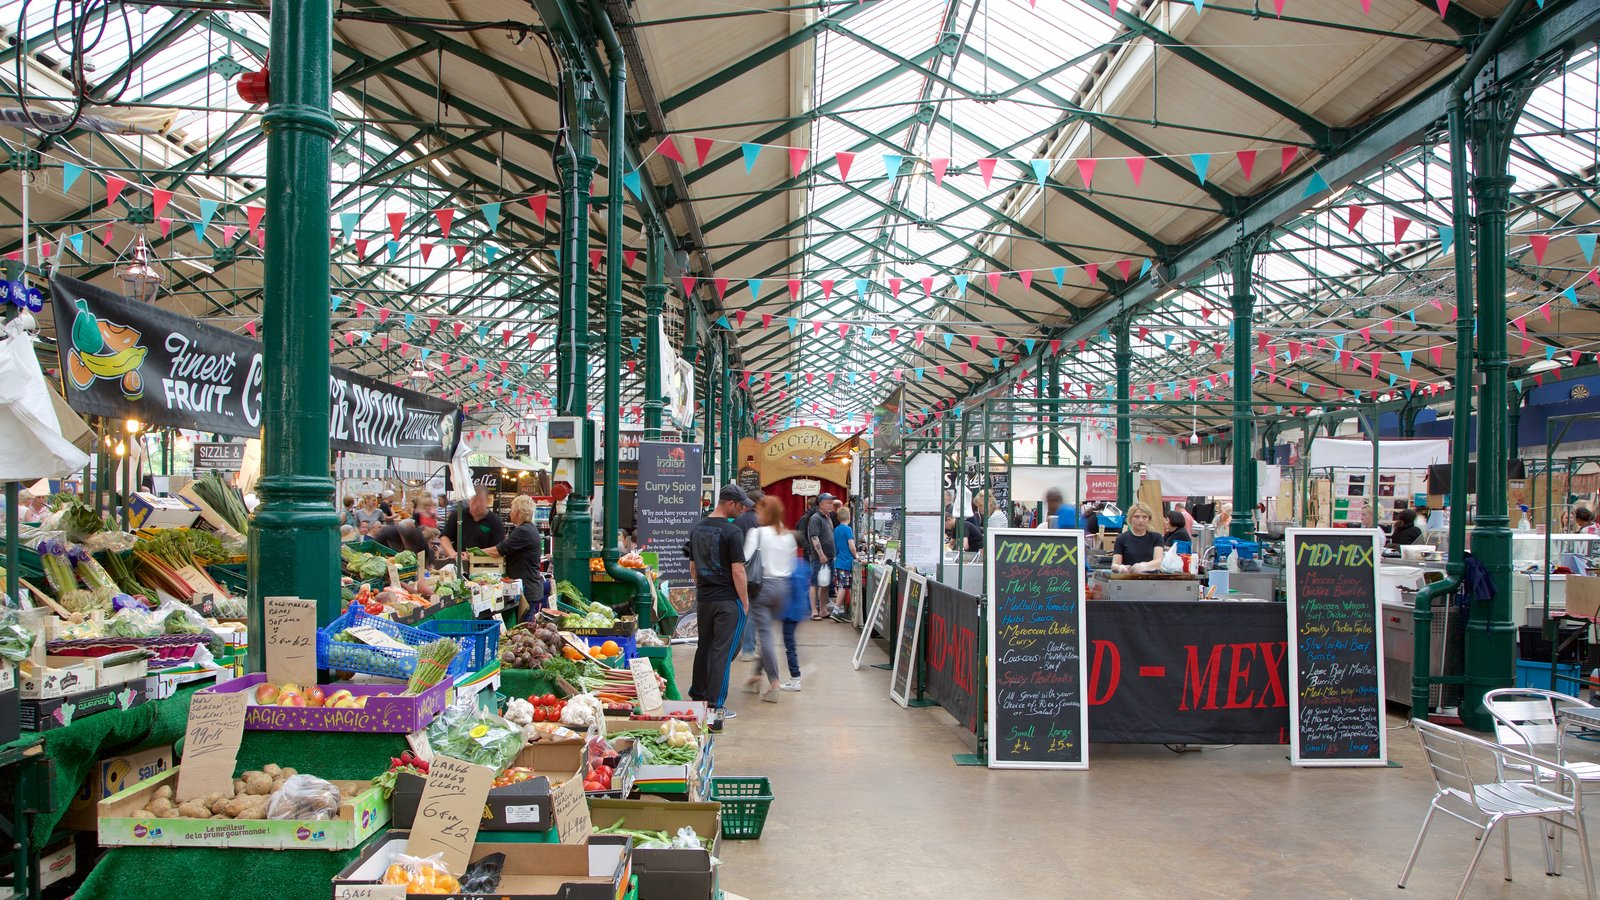 St. George\'s Market featuring markets, signage and a square or plaza